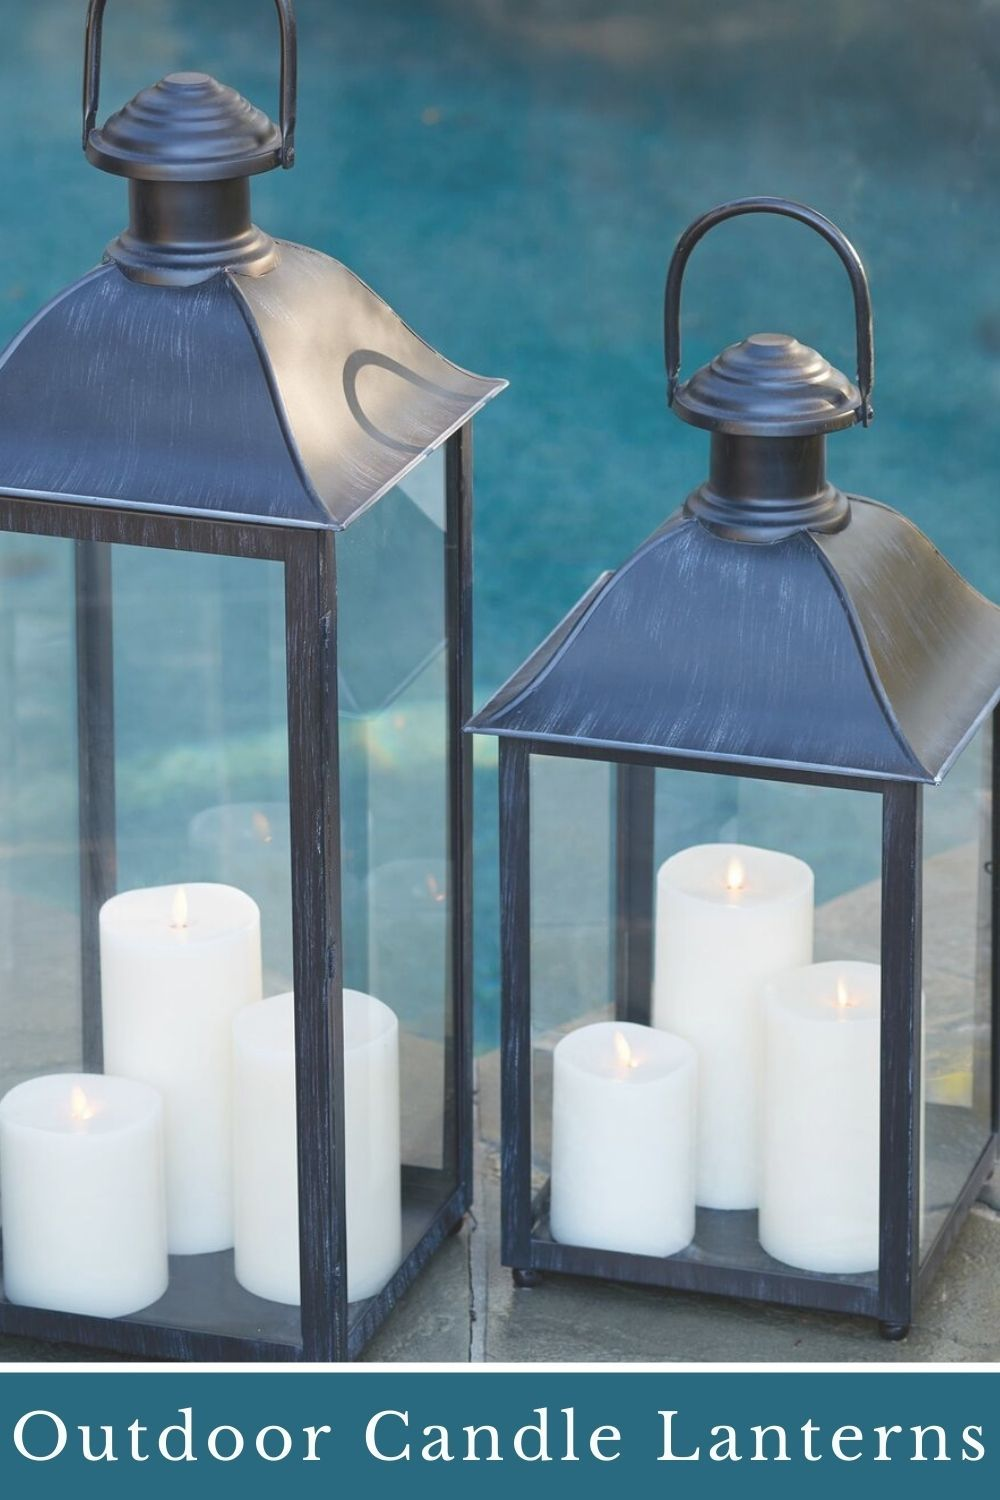 Decorative Outdoor Candle Lanterns In 2021 Outdoor Candle Lanterns Outdoor Lanterns Candle Lanterns